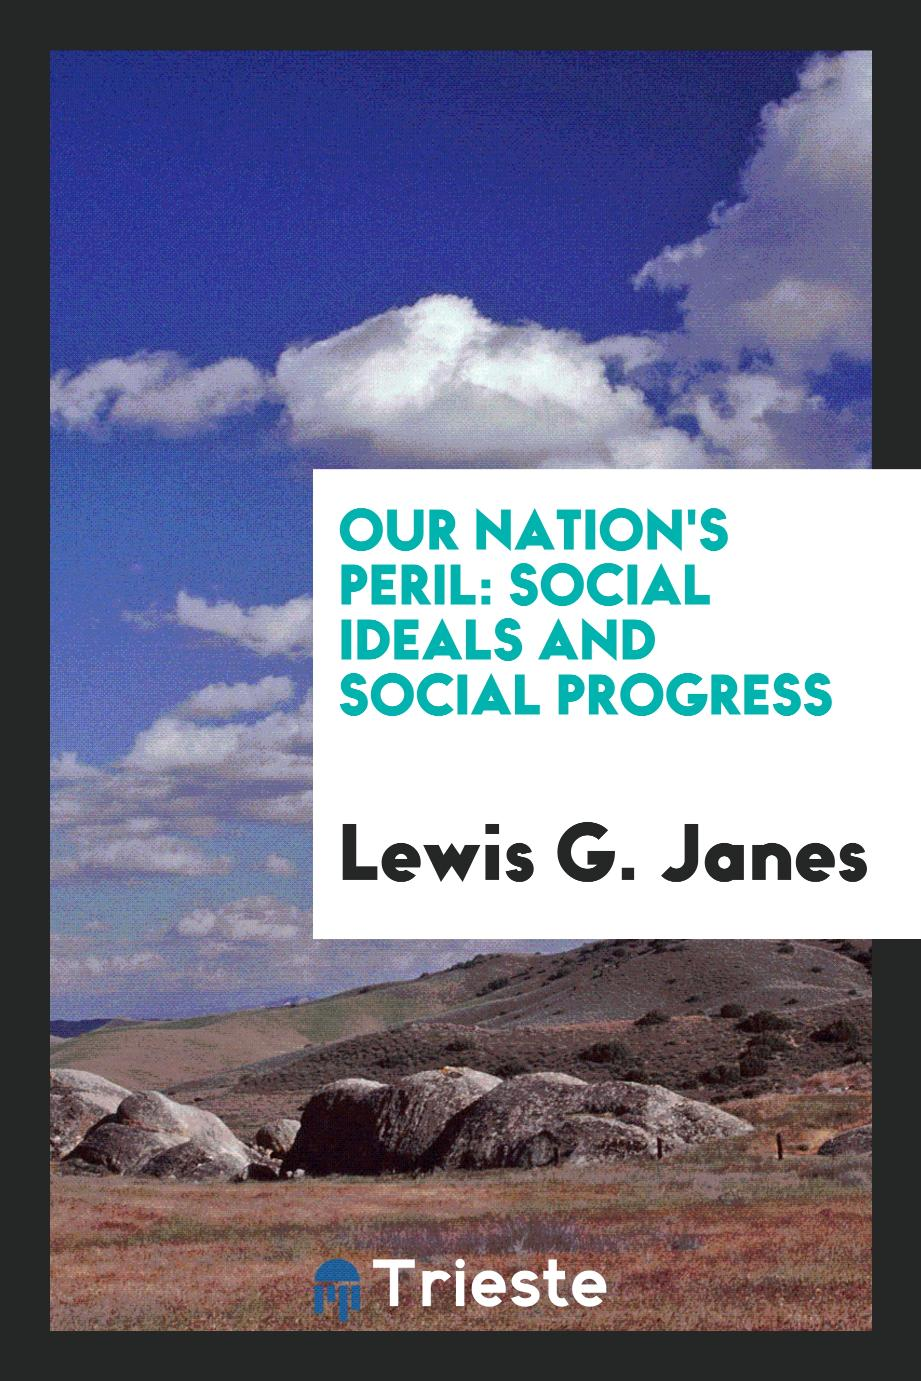 Our Nation's Peril: Social Ideals and Social Progress